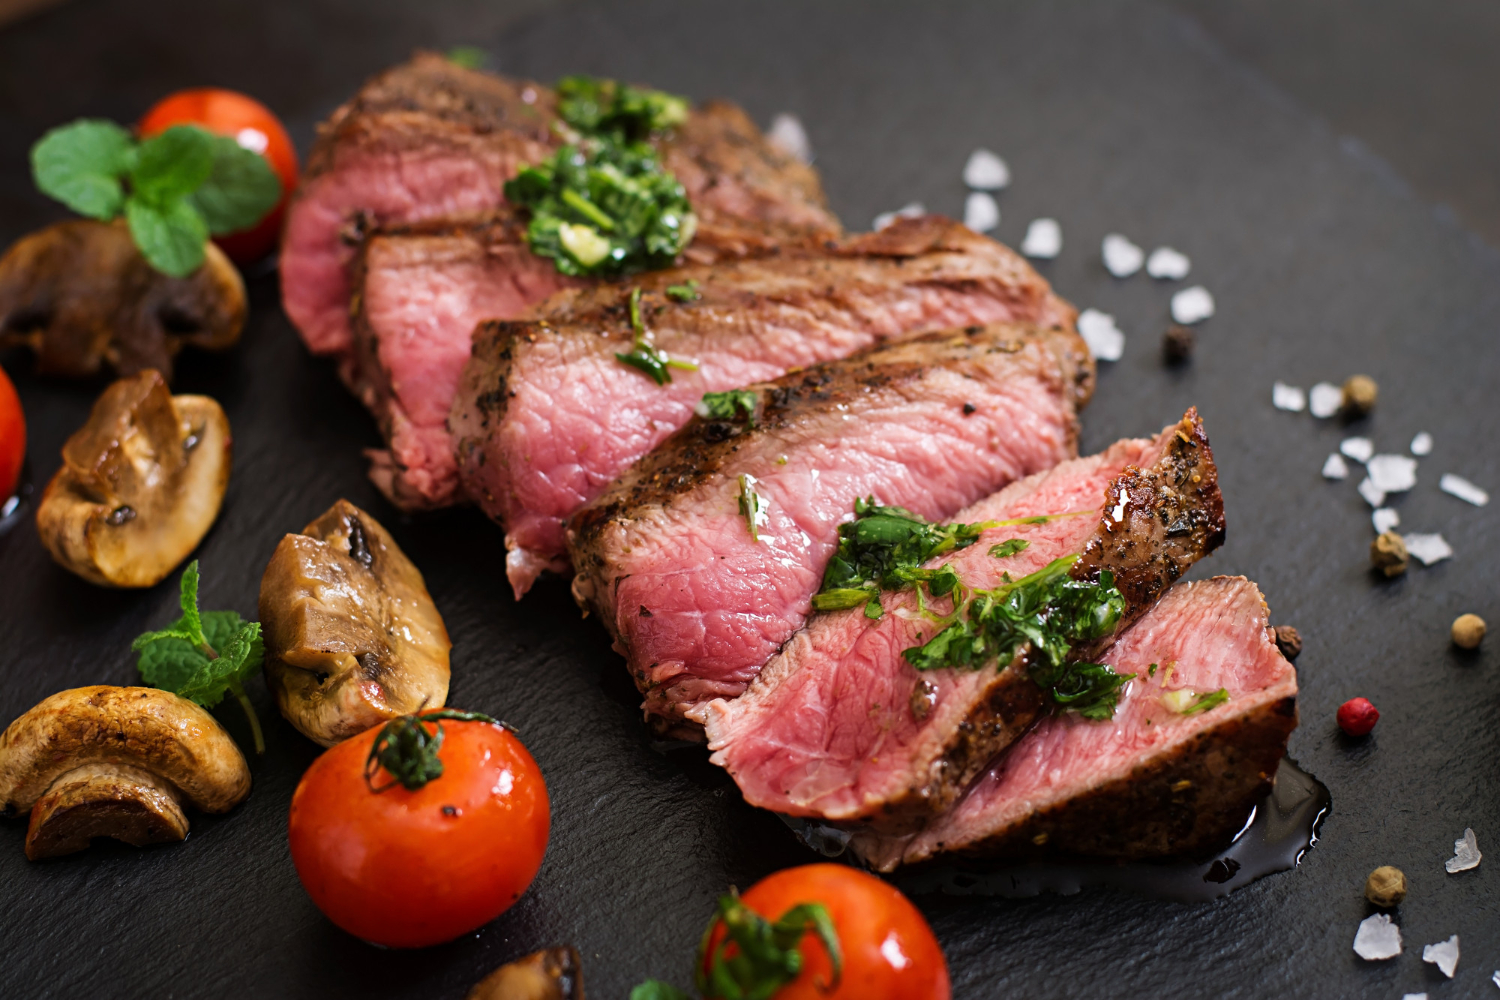 juicy-steak-medium-rare-beef-with-spices-and-grilled-vegetables